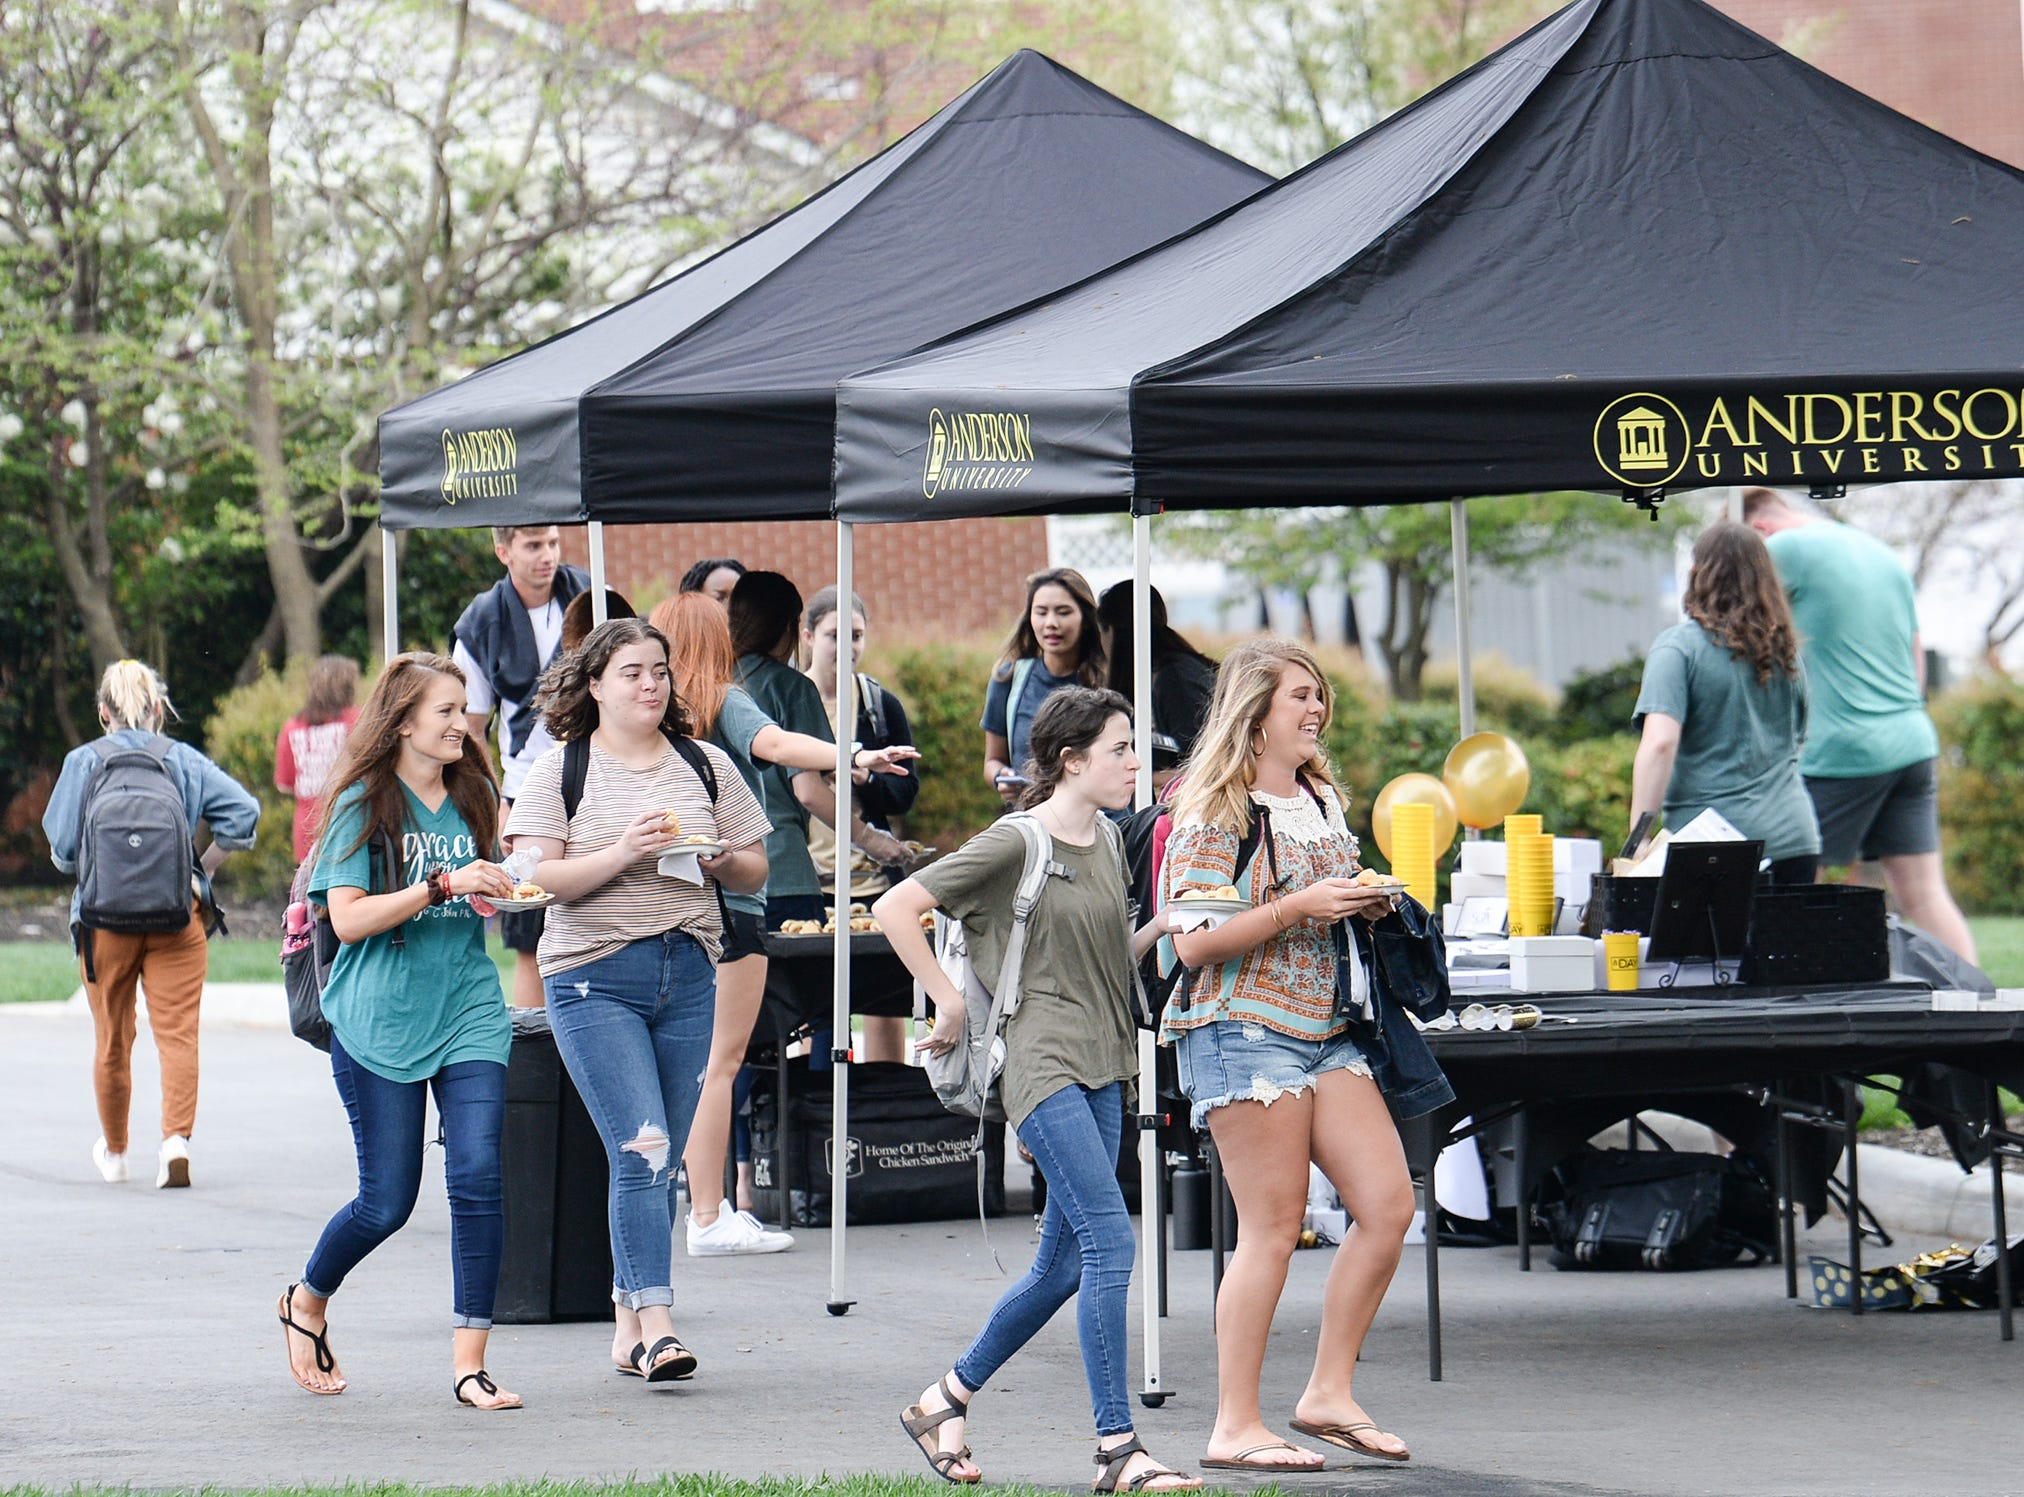 A Day to Give at Anderson University, a 24-hour fundraising drive meant to give people from the school a chance to participate in events on campus to recognize the past, present, and future.